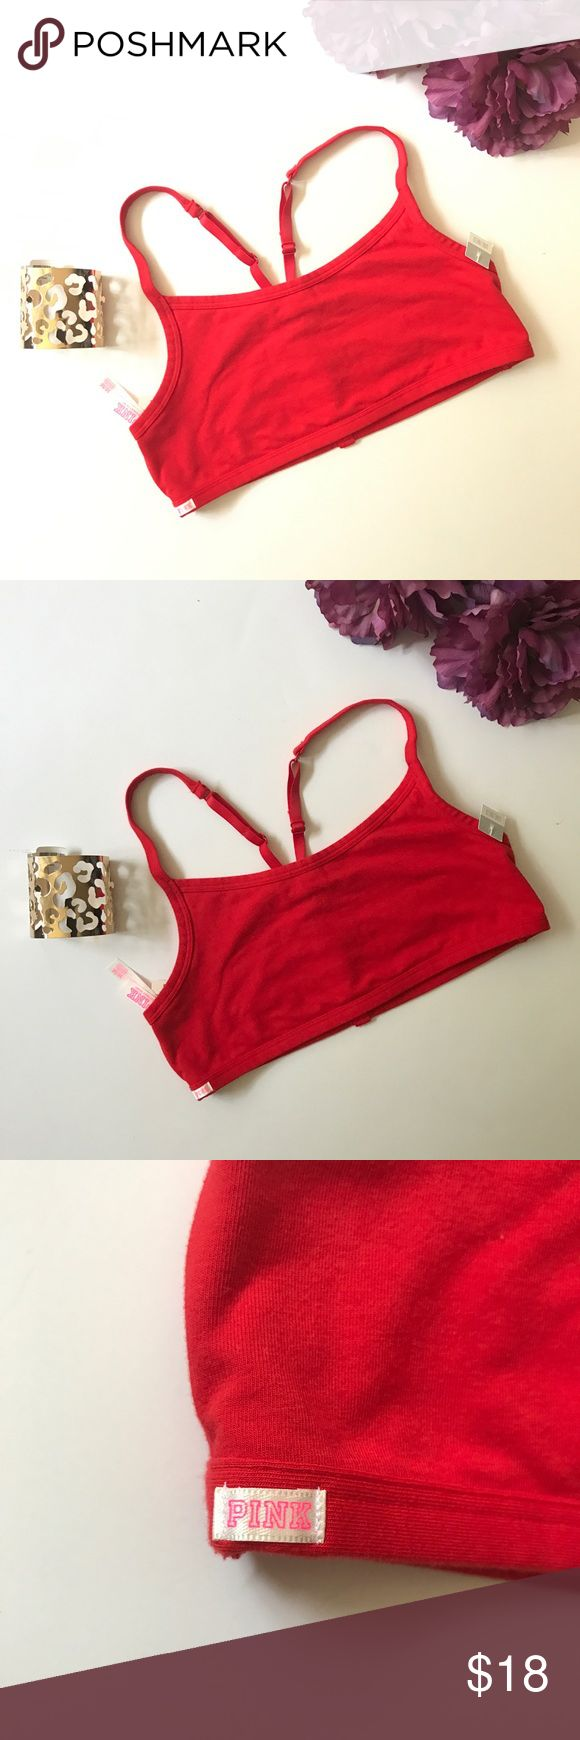 PINK Victoria's Secret red Sport bra size M This is a new with tags sports bra by PINK Victoria's Secret. Red color.  Size Medium. For more VS/ and more brands, new with tags and preloved/gently used items check out my closet ❤️ Bundle and save. This listing is ONLY for the Bra. If you're interested in anything else please let me know 😉 Victoria's Secret Intimates & Sleepwear Bras